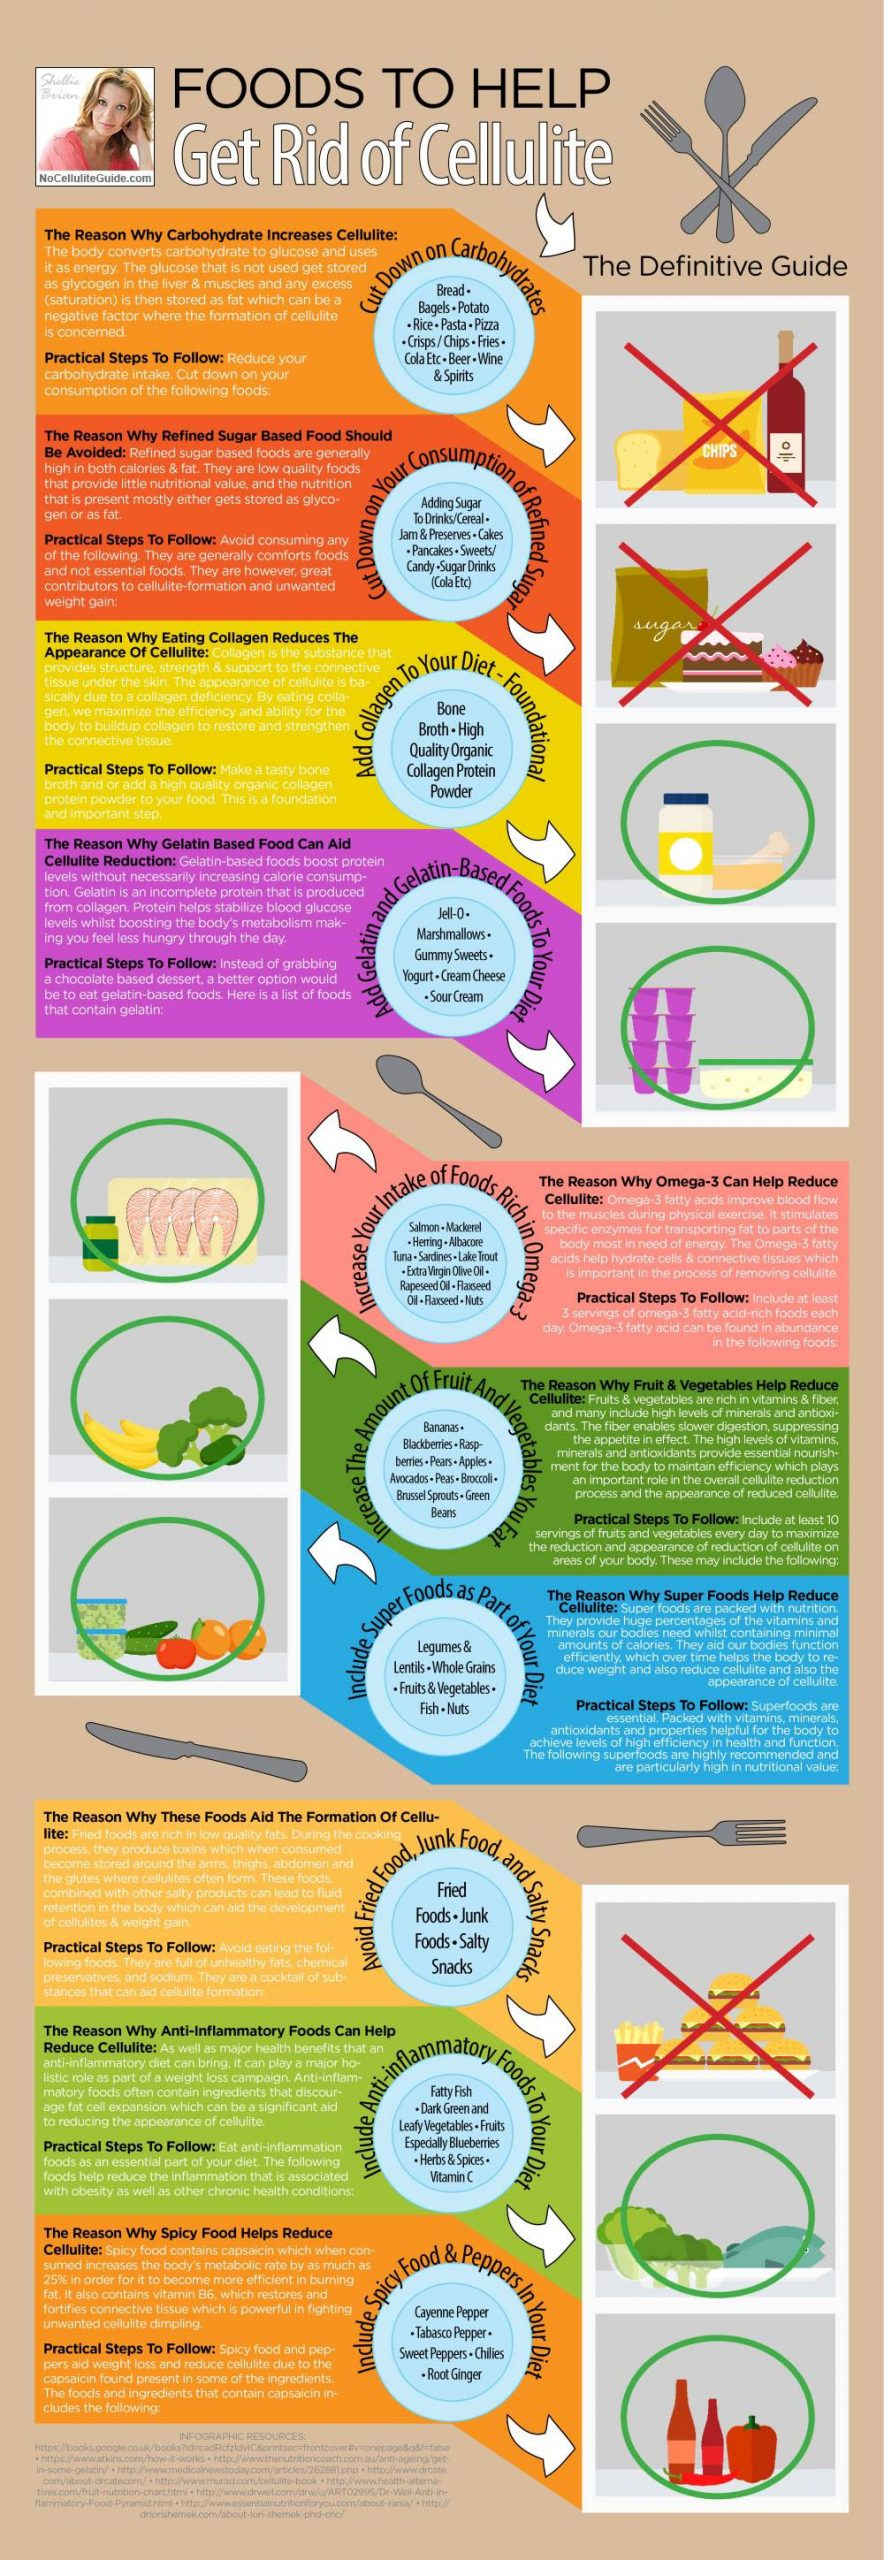 Foods that Get Rid of Cellulite - The Definitive Guide (Infographic)